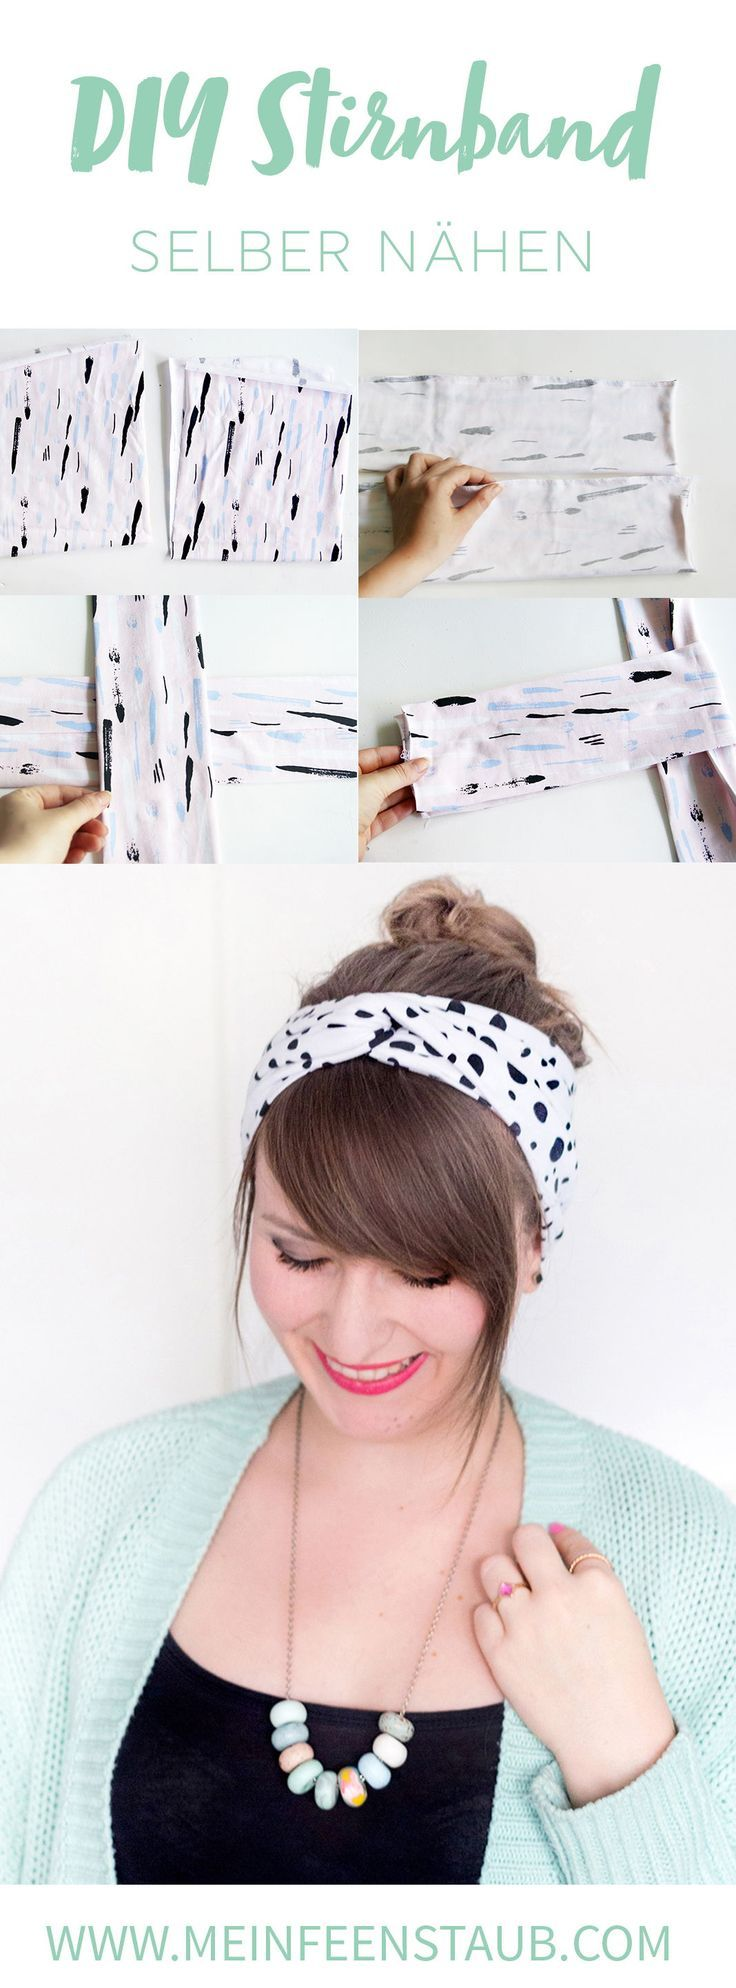 DIY: sew turban headband